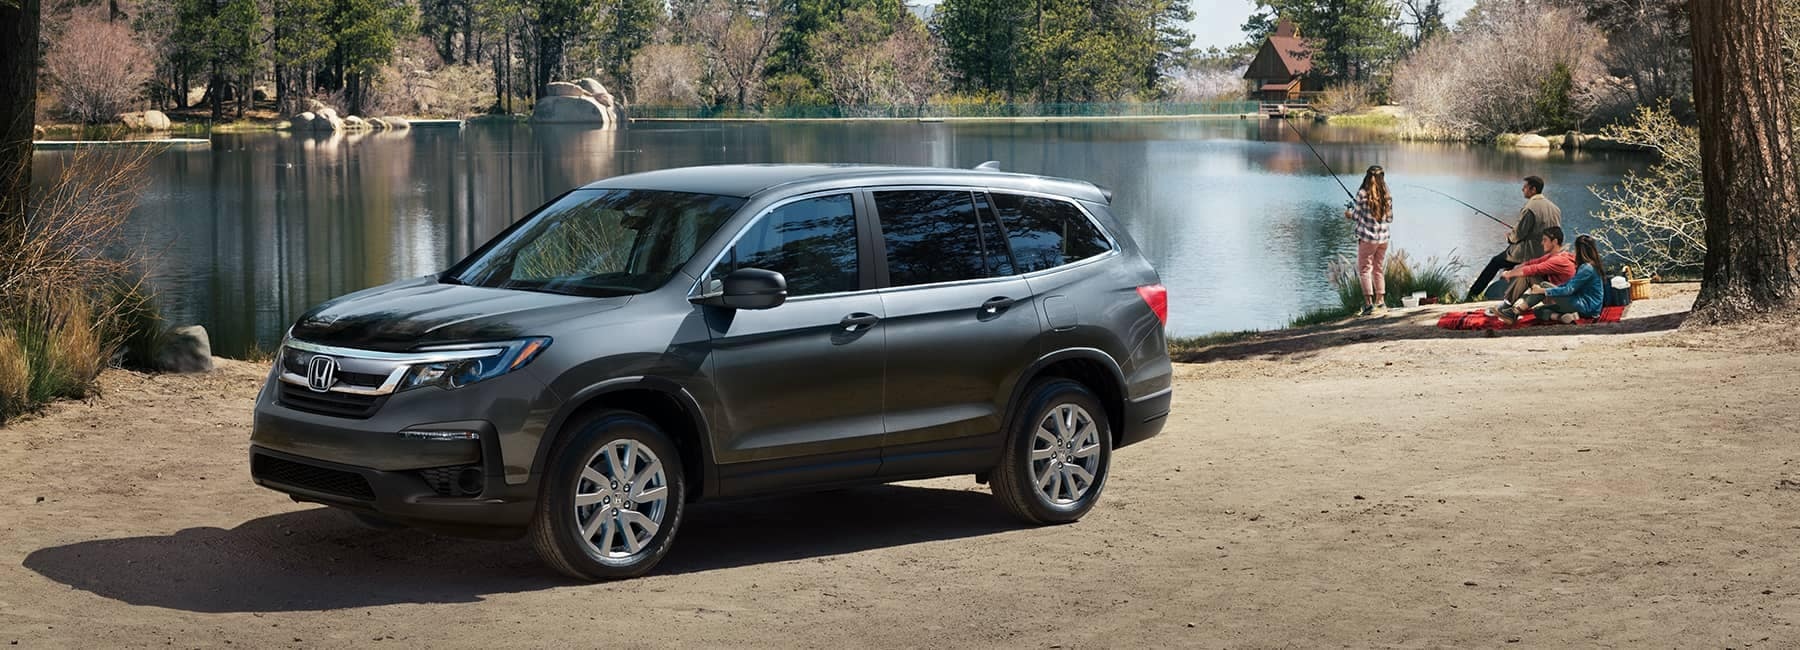 2021 Dark Grey Honda Pilot parked next to a forrest lake